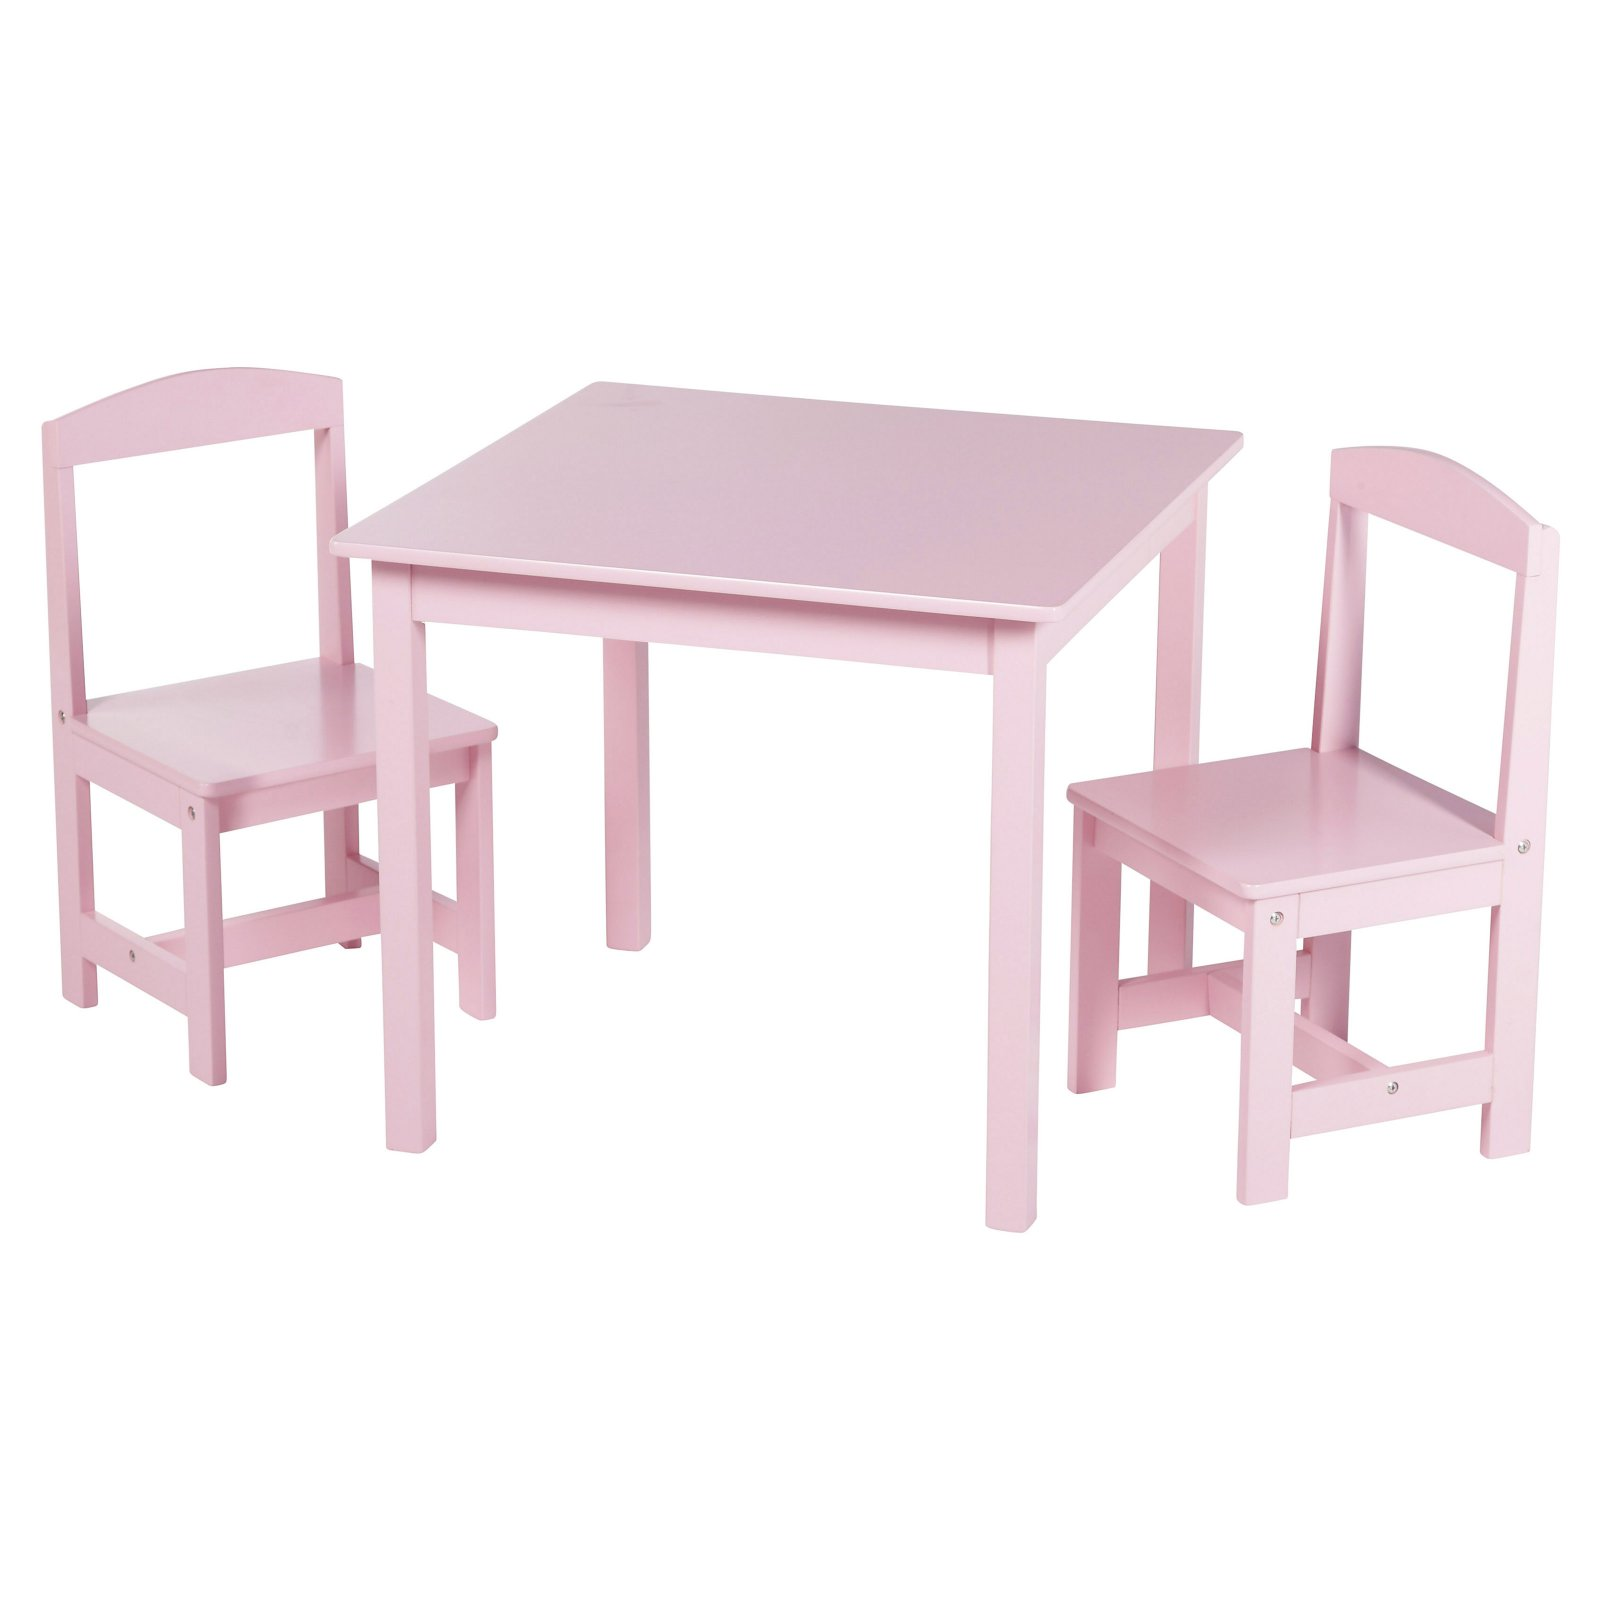 tms hayden kids 3 piece table and chair set multiple colors. Black Bedroom Furniture Sets. Home Design Ideas